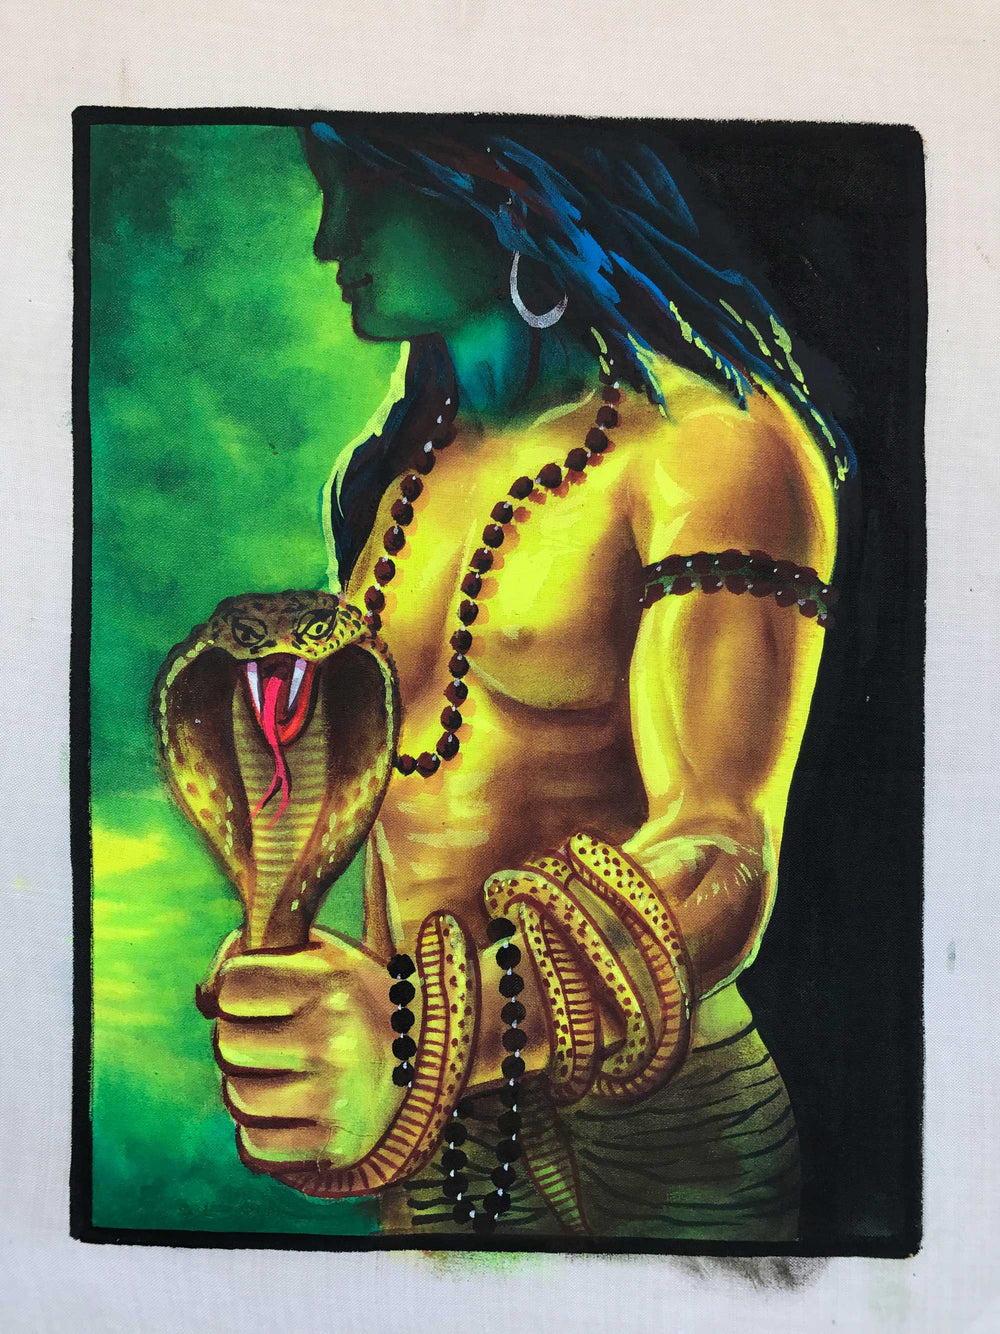 UV Glow Lord Shiva Snake painting made from fluorescent colors